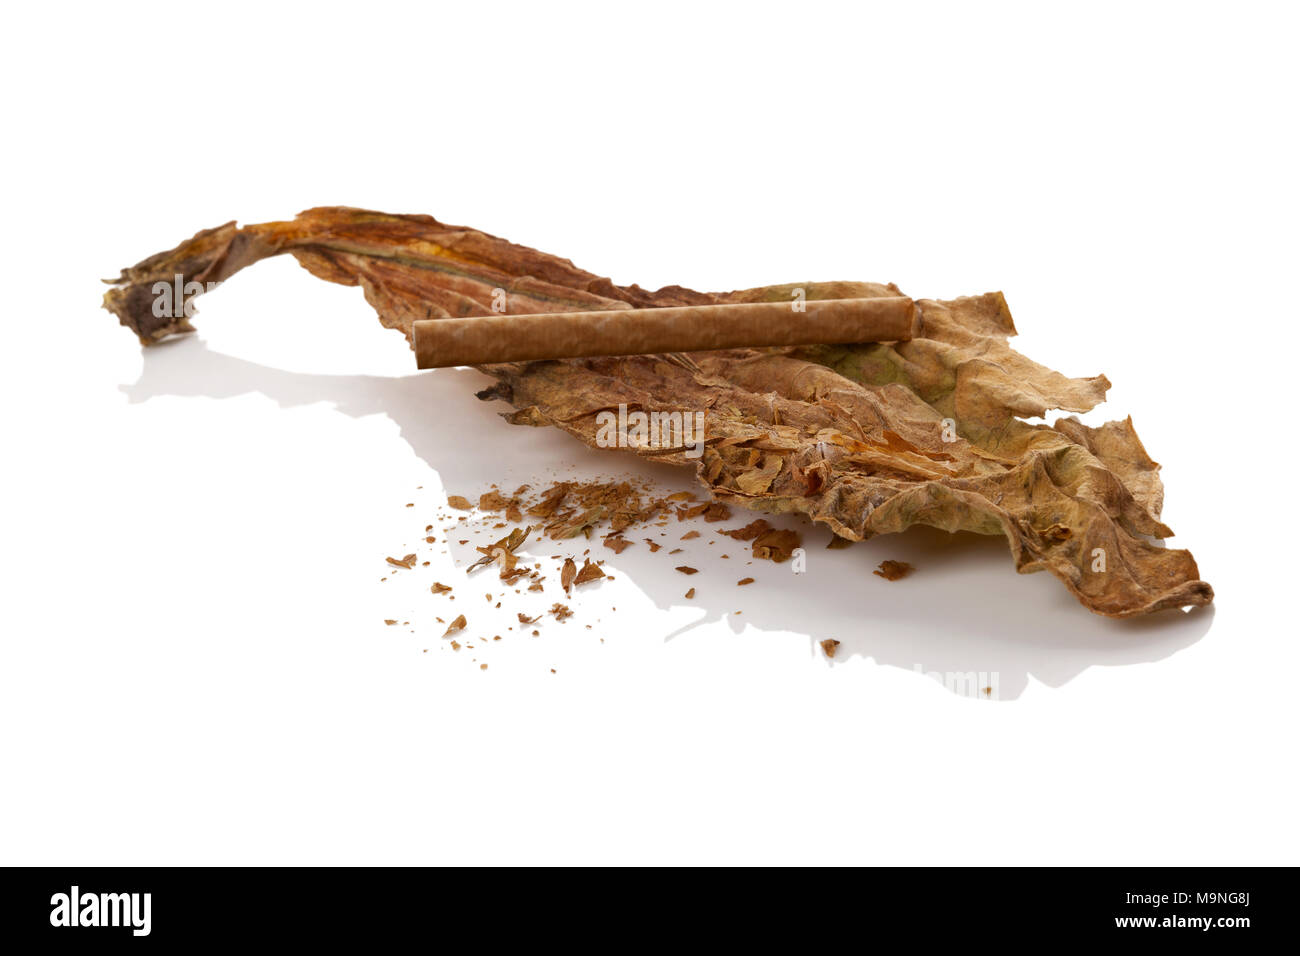 Dried tobacco leaves with cigarette isolated on white background. Nicotine addiction. - Stock Image